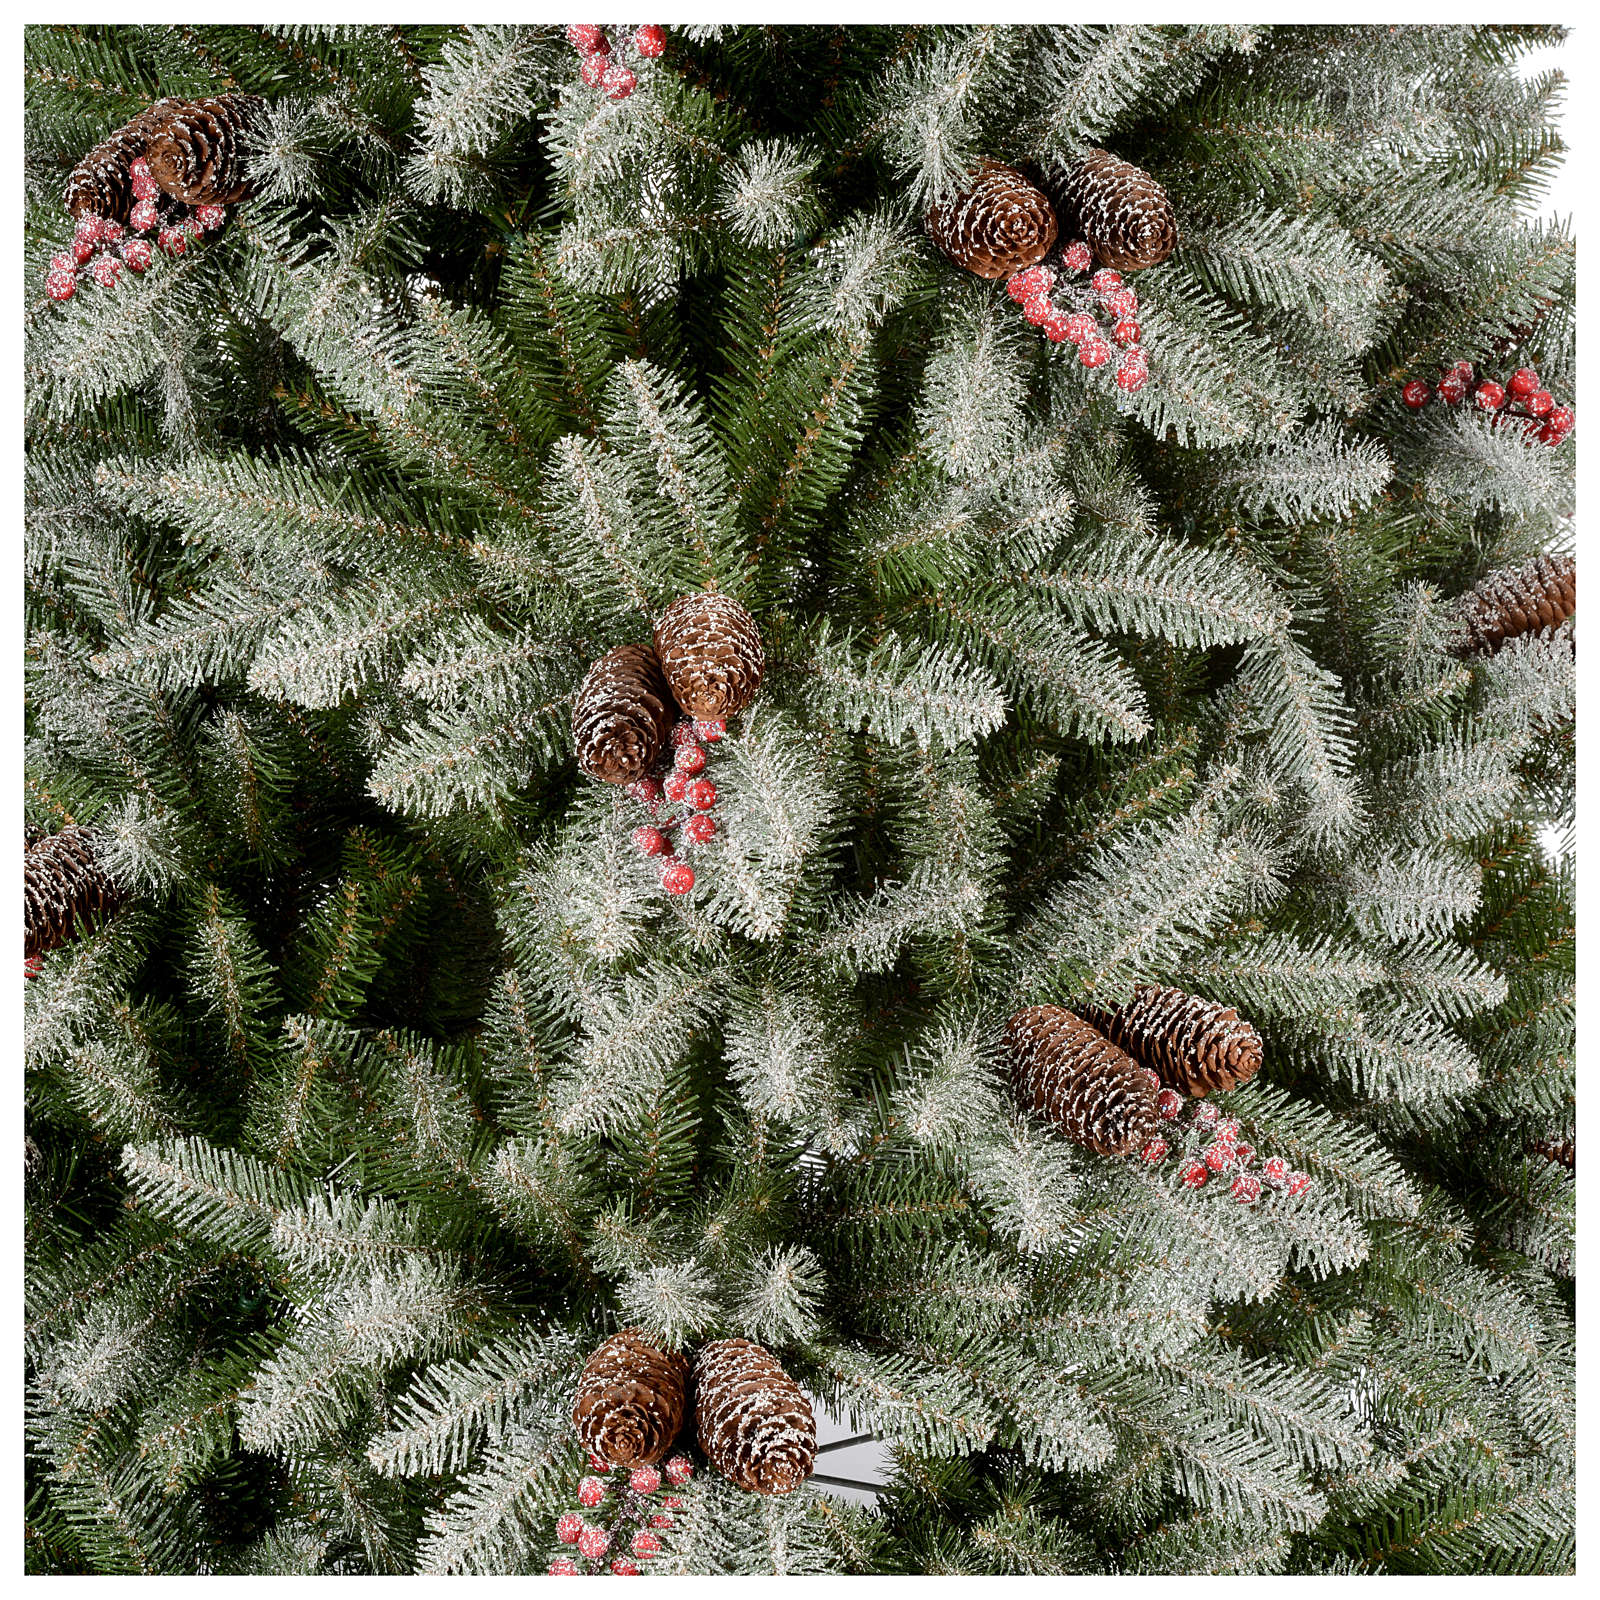 Artificial Christmas Tree Covers